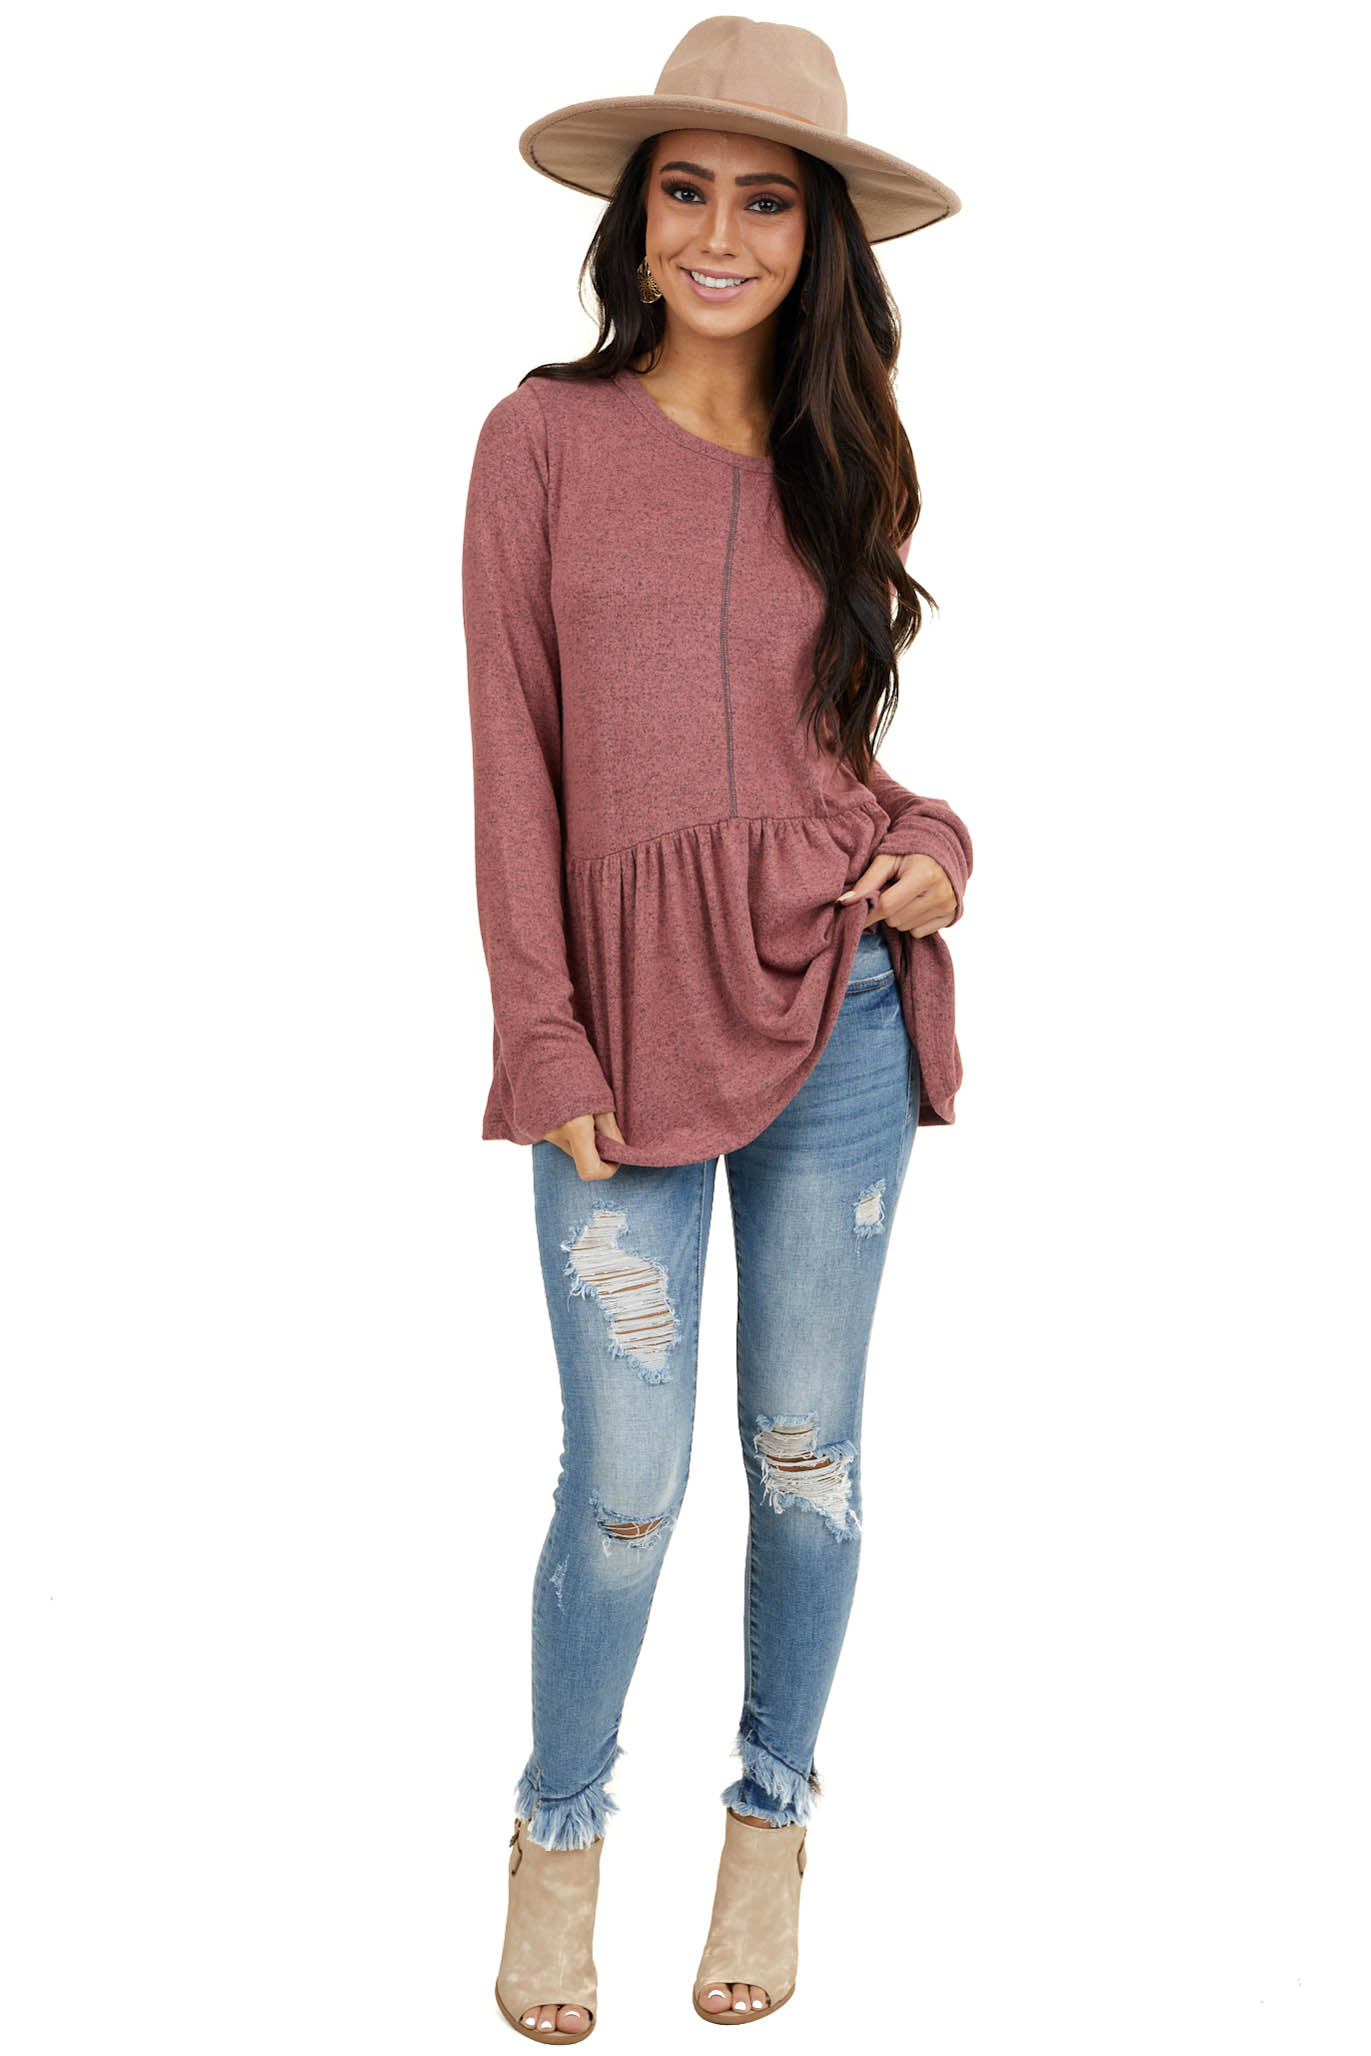 Heathered Mauve Soft Knit Peplum Top with Long Sleeves